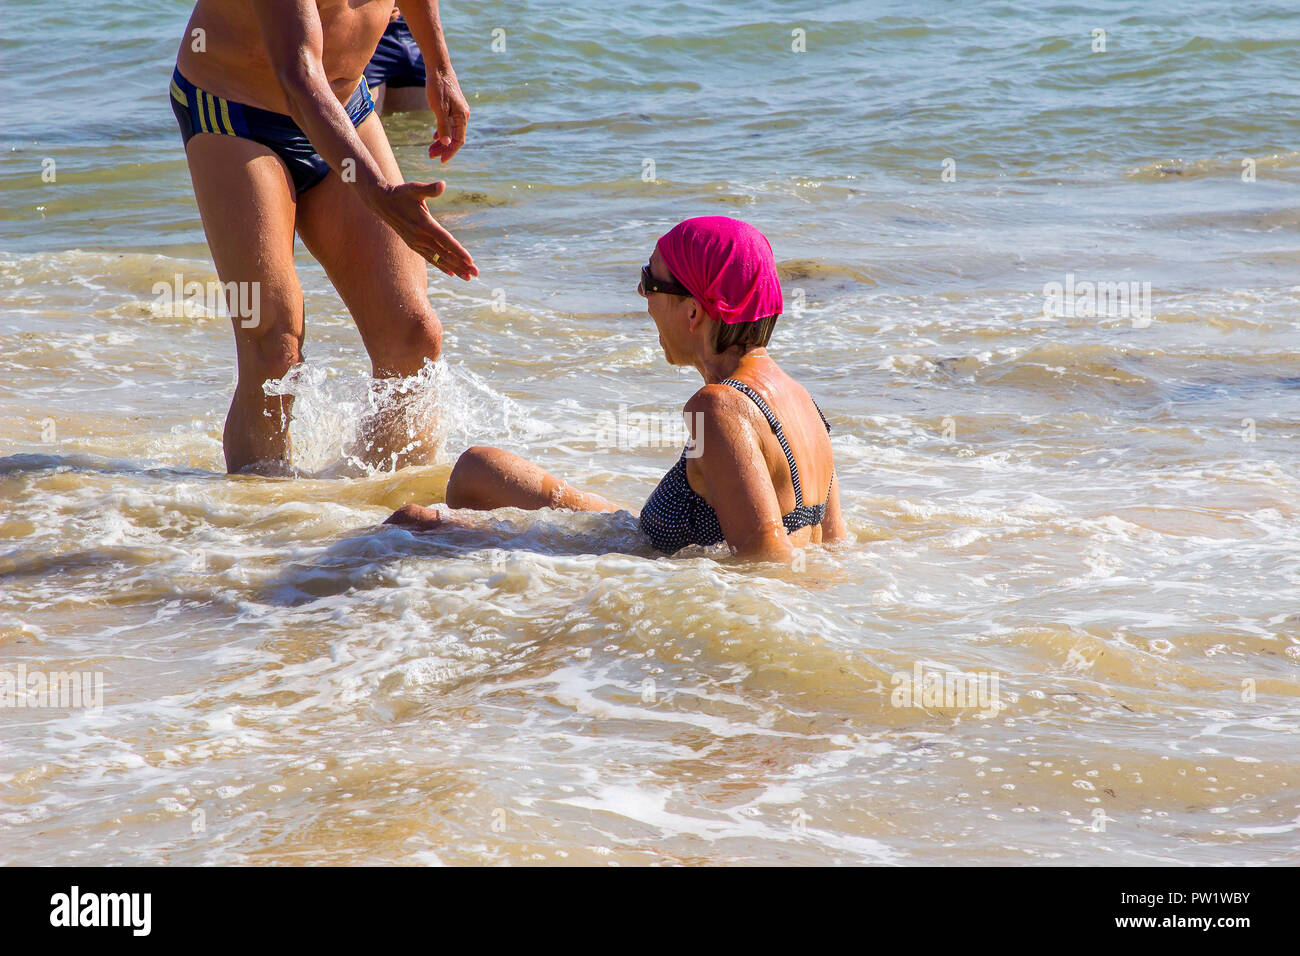 29 september 2018 A man with outstretched hand to help a lady who has fallen been swept of her feet by the breaking waves on a beach in Albuferia Port Stock Photo